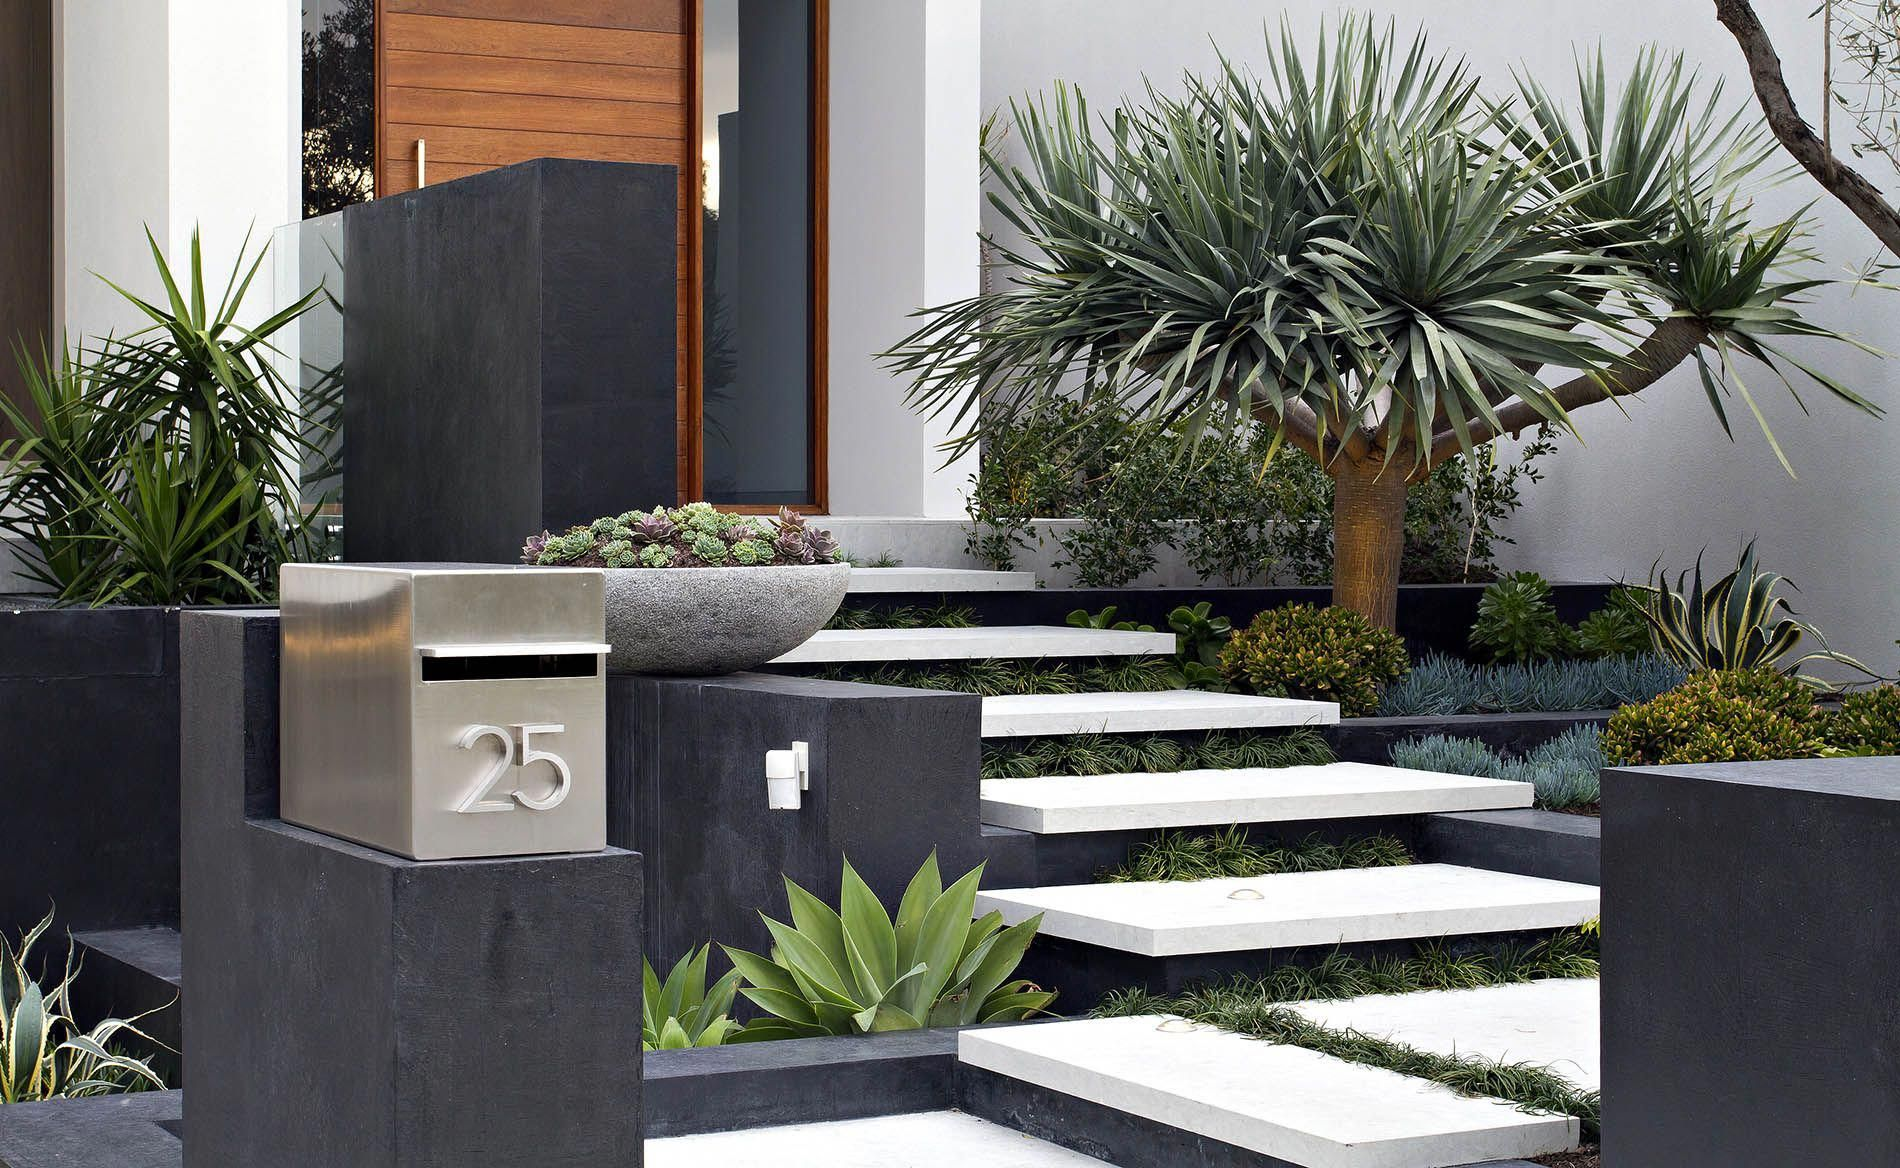 Landscape Gardening Terms And Conditions Landscape Gardening Jobs Somerset Residential Landscaping Modern Landscape Design Modern Landscaping